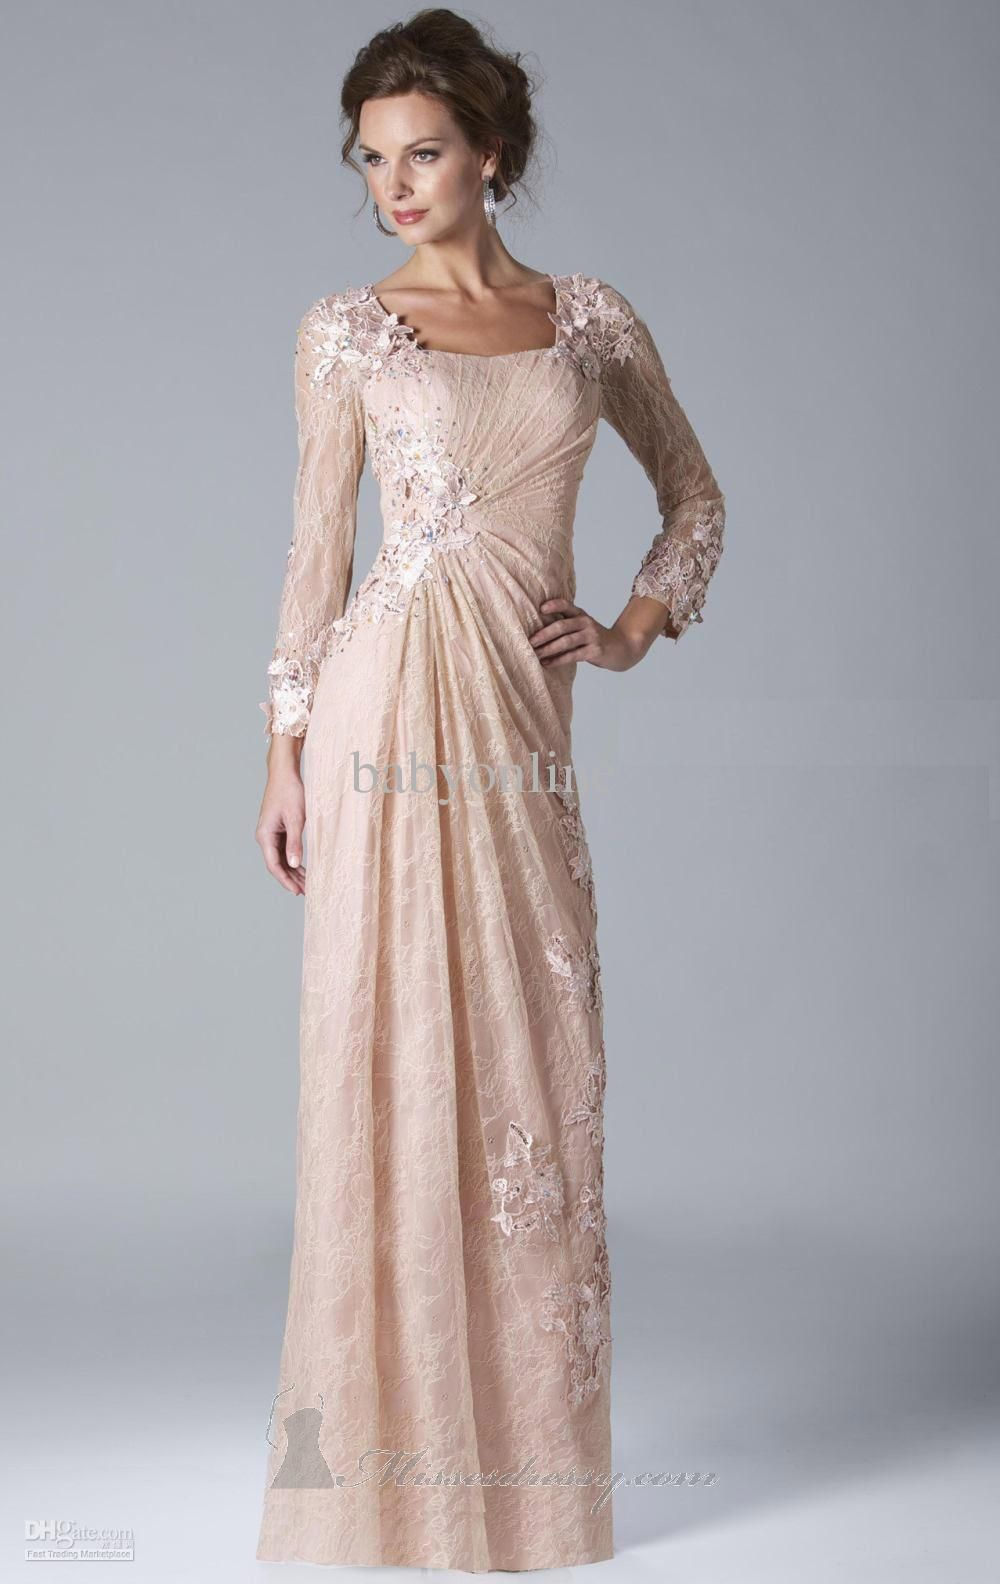 Where to buy mother of bride dress